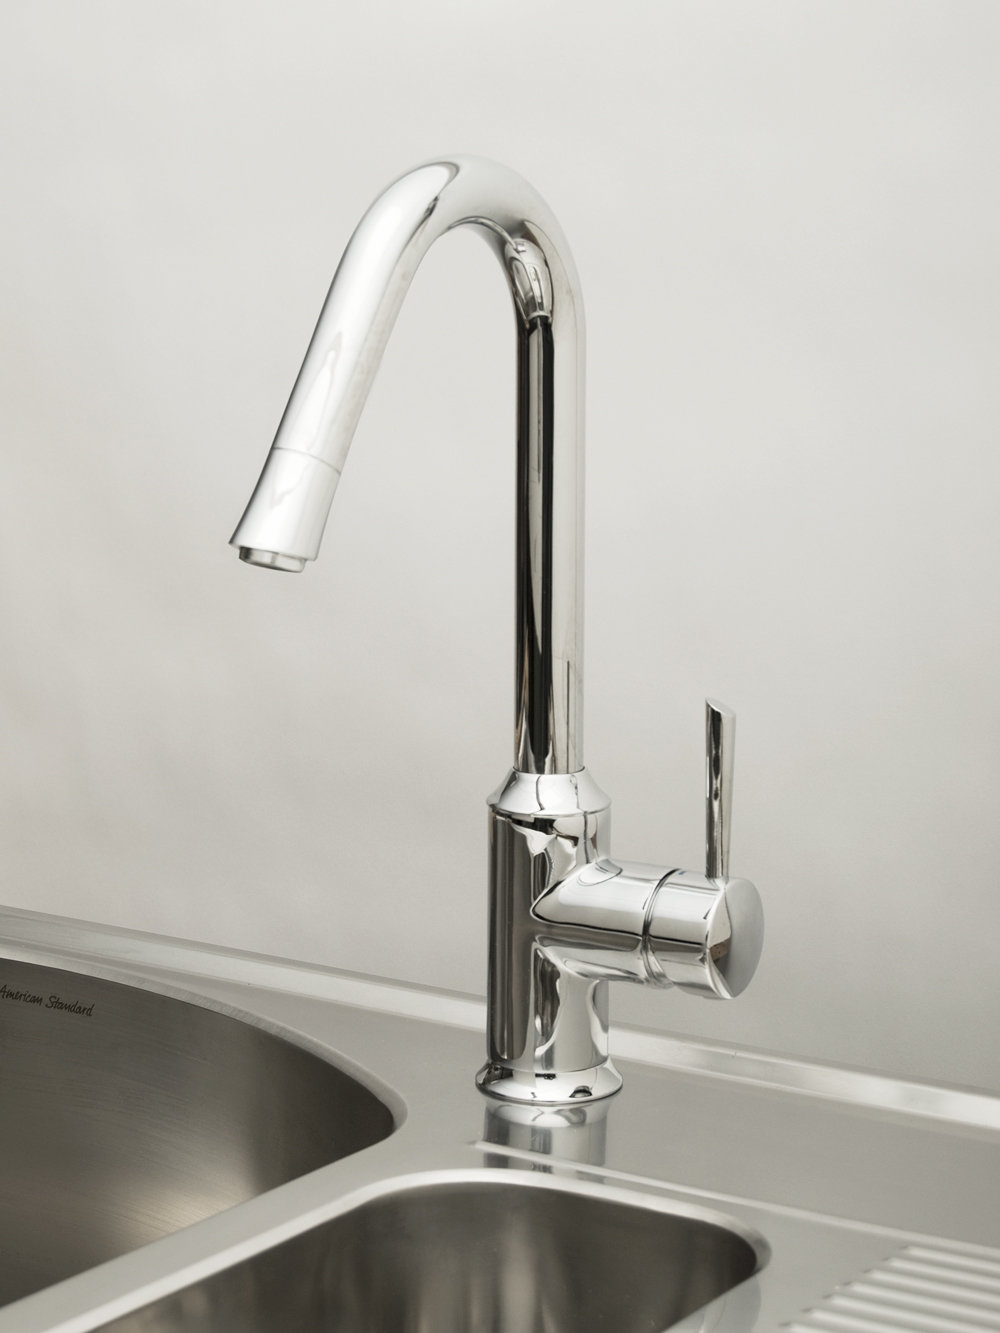 The American Standard Pekoe pull-down kitchen faucet will keep its ...